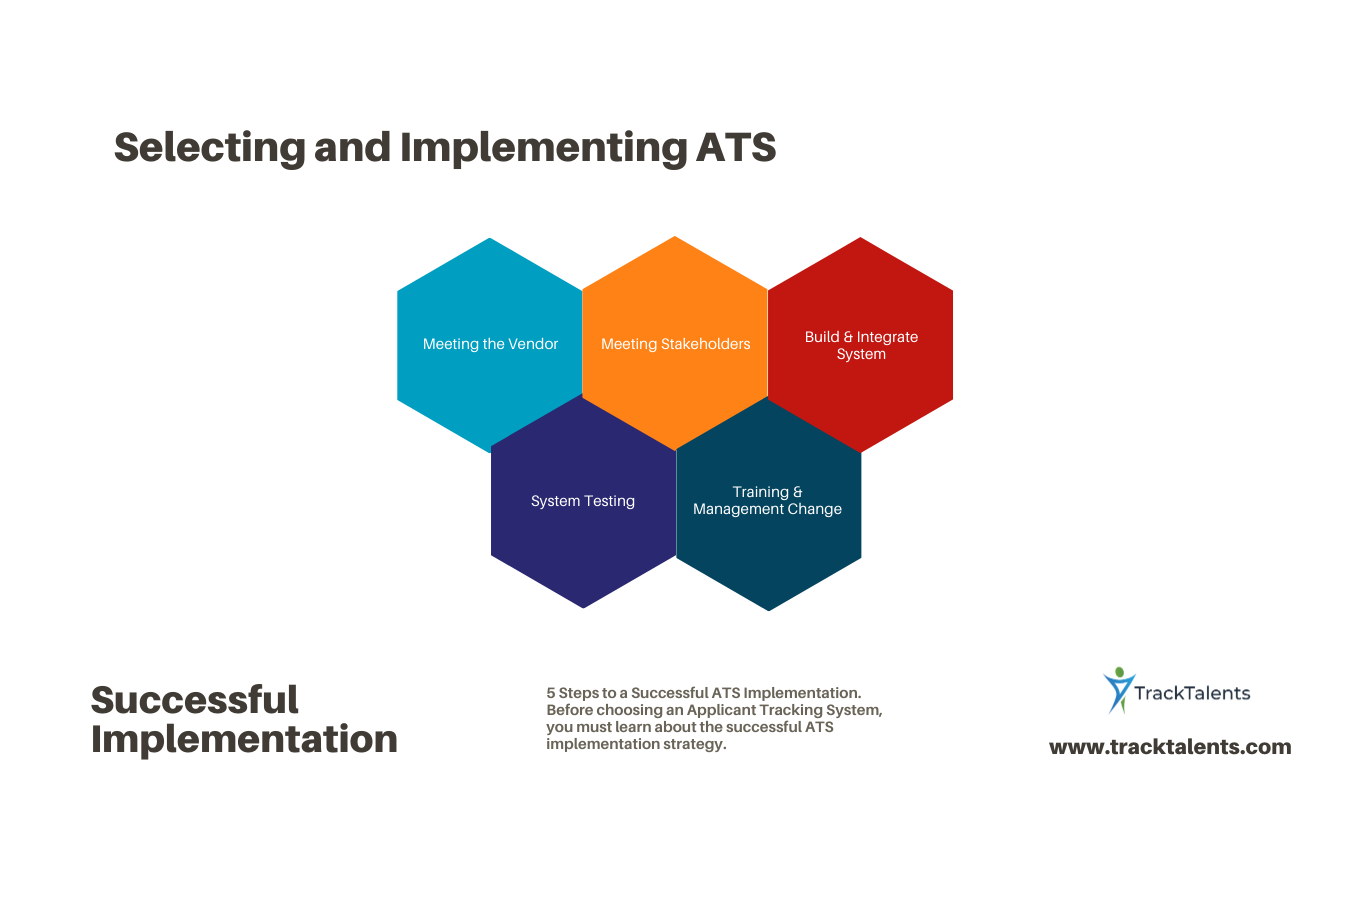 Successful ATS Implementation